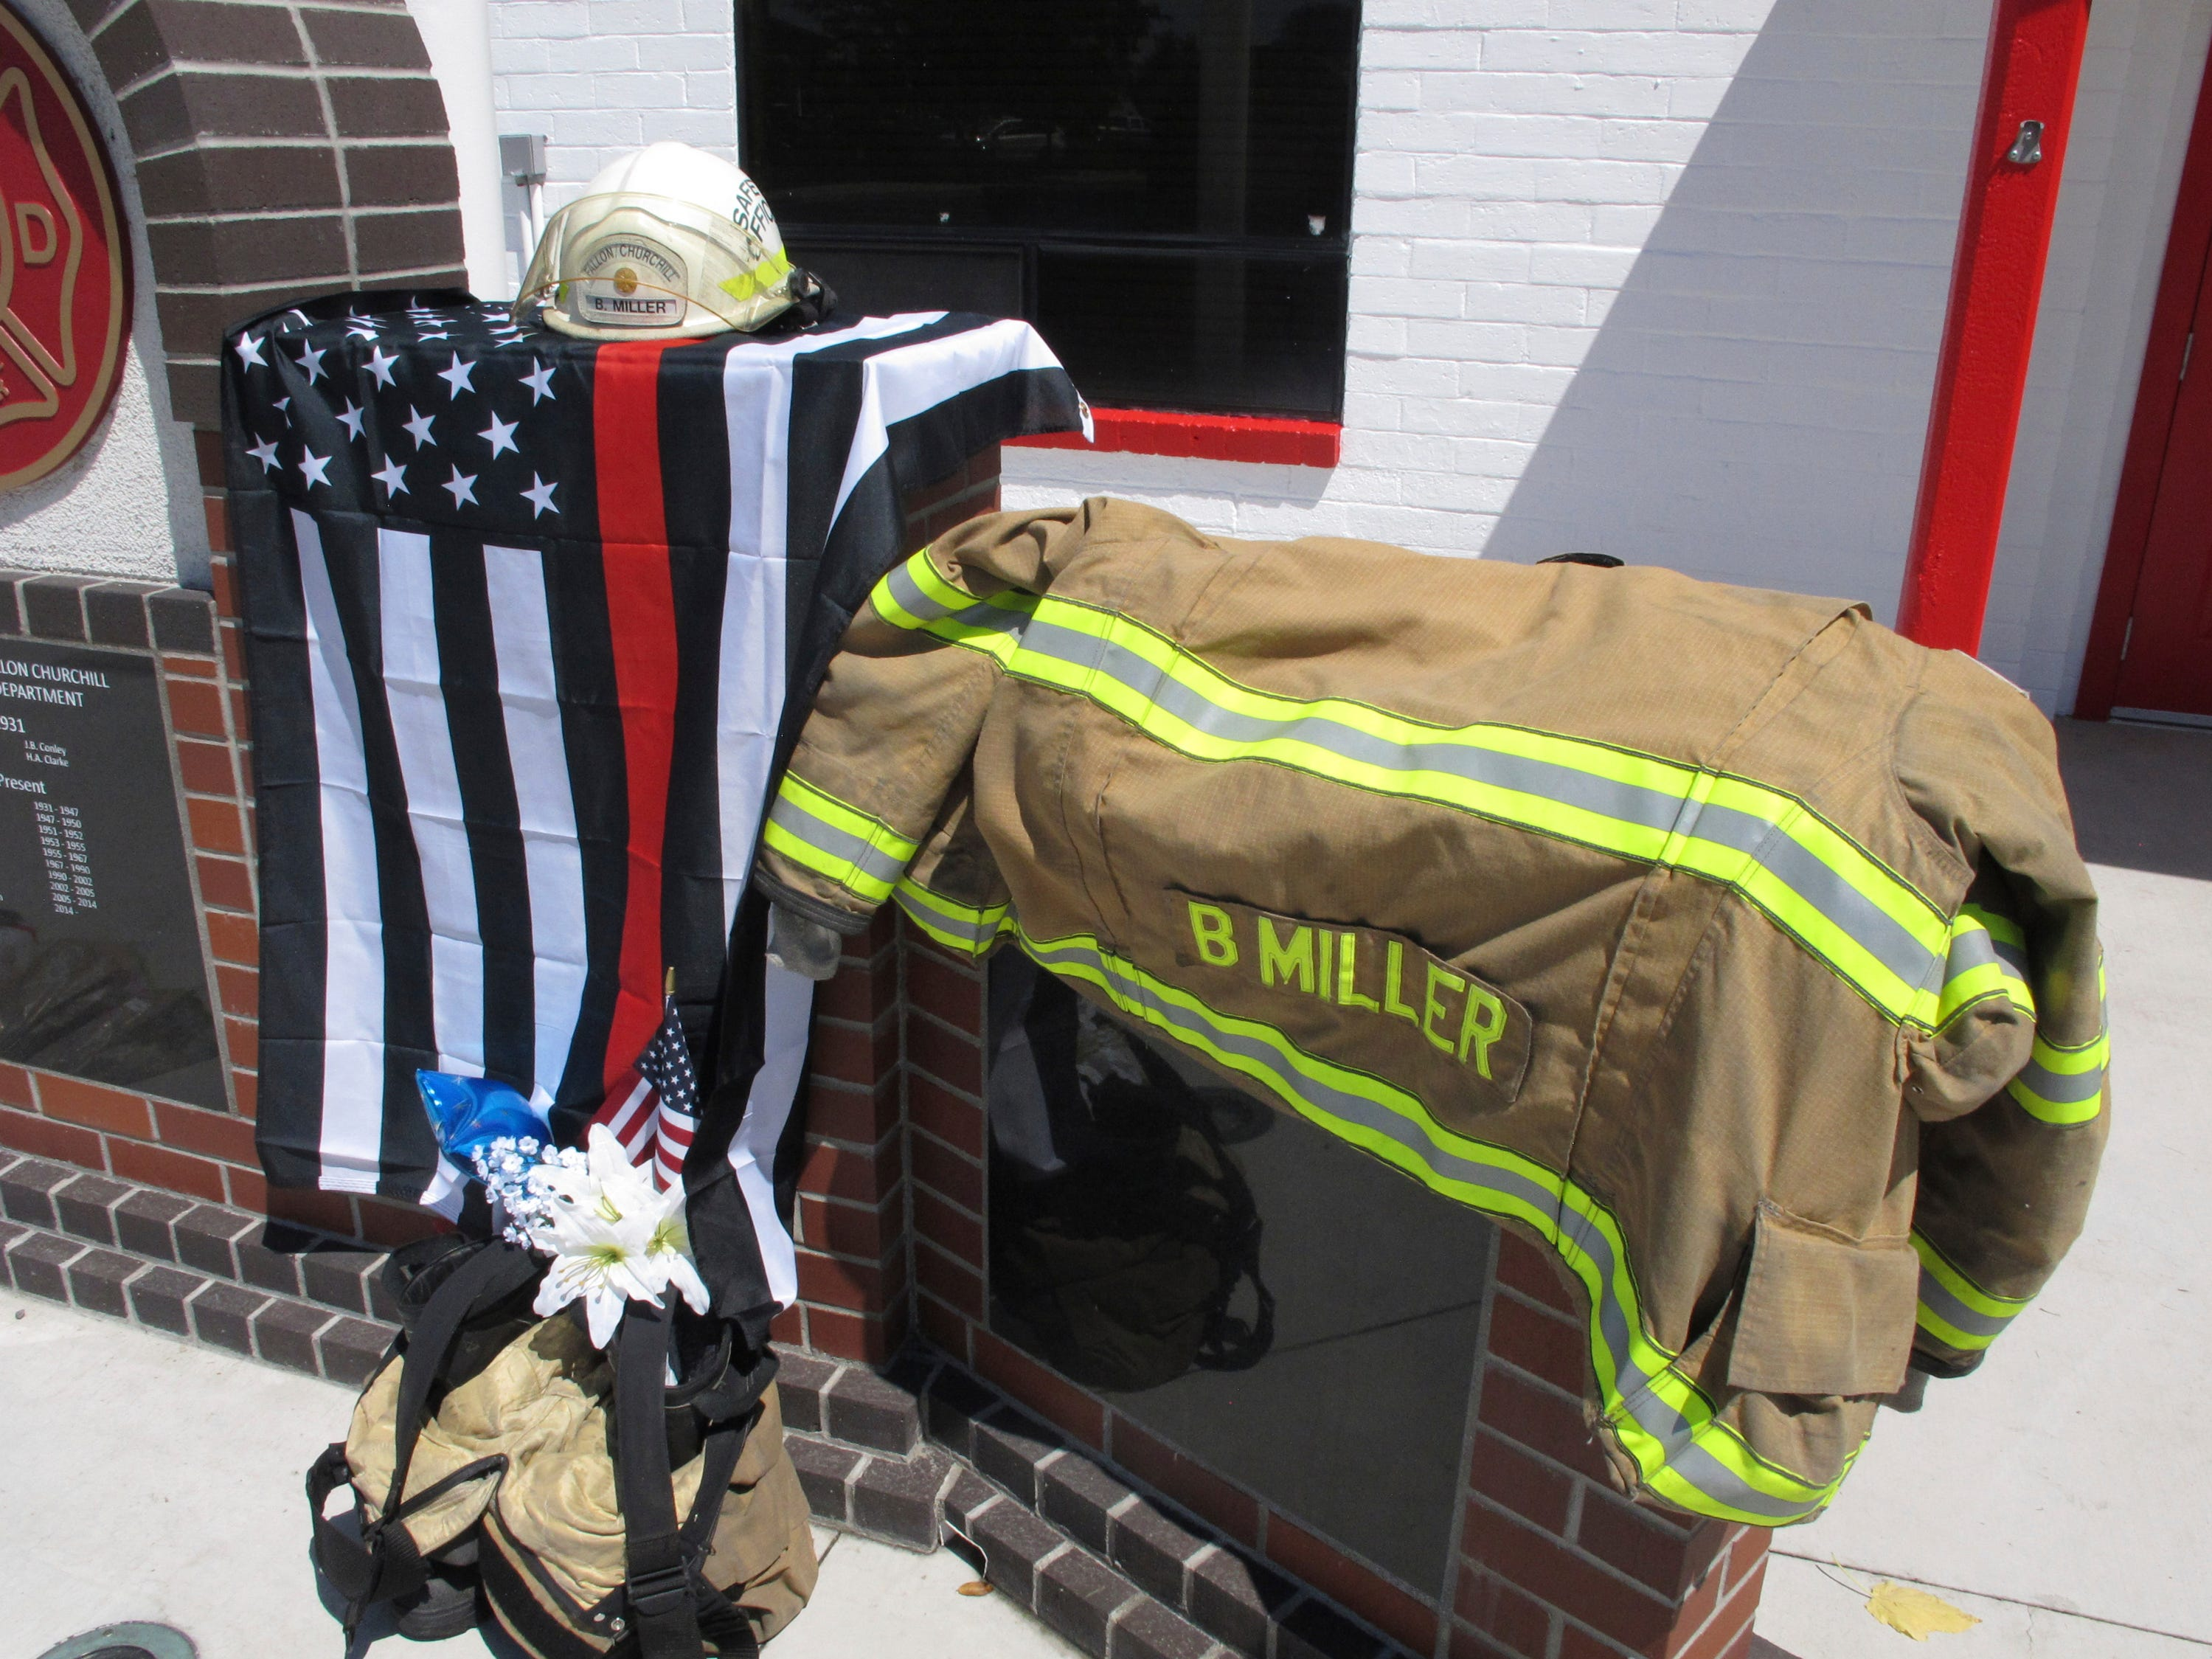 "The equipment of Charles E. ""Bert"" Miller, 61, who was fatally shot the day before during Sunday services at his local Mormon church, is pictured at a makeshift memorial outside the rural Nevada fire station where the longtime volunteer firefighter worked, Monday, July 23, 2018, in Fallon, Nevada."